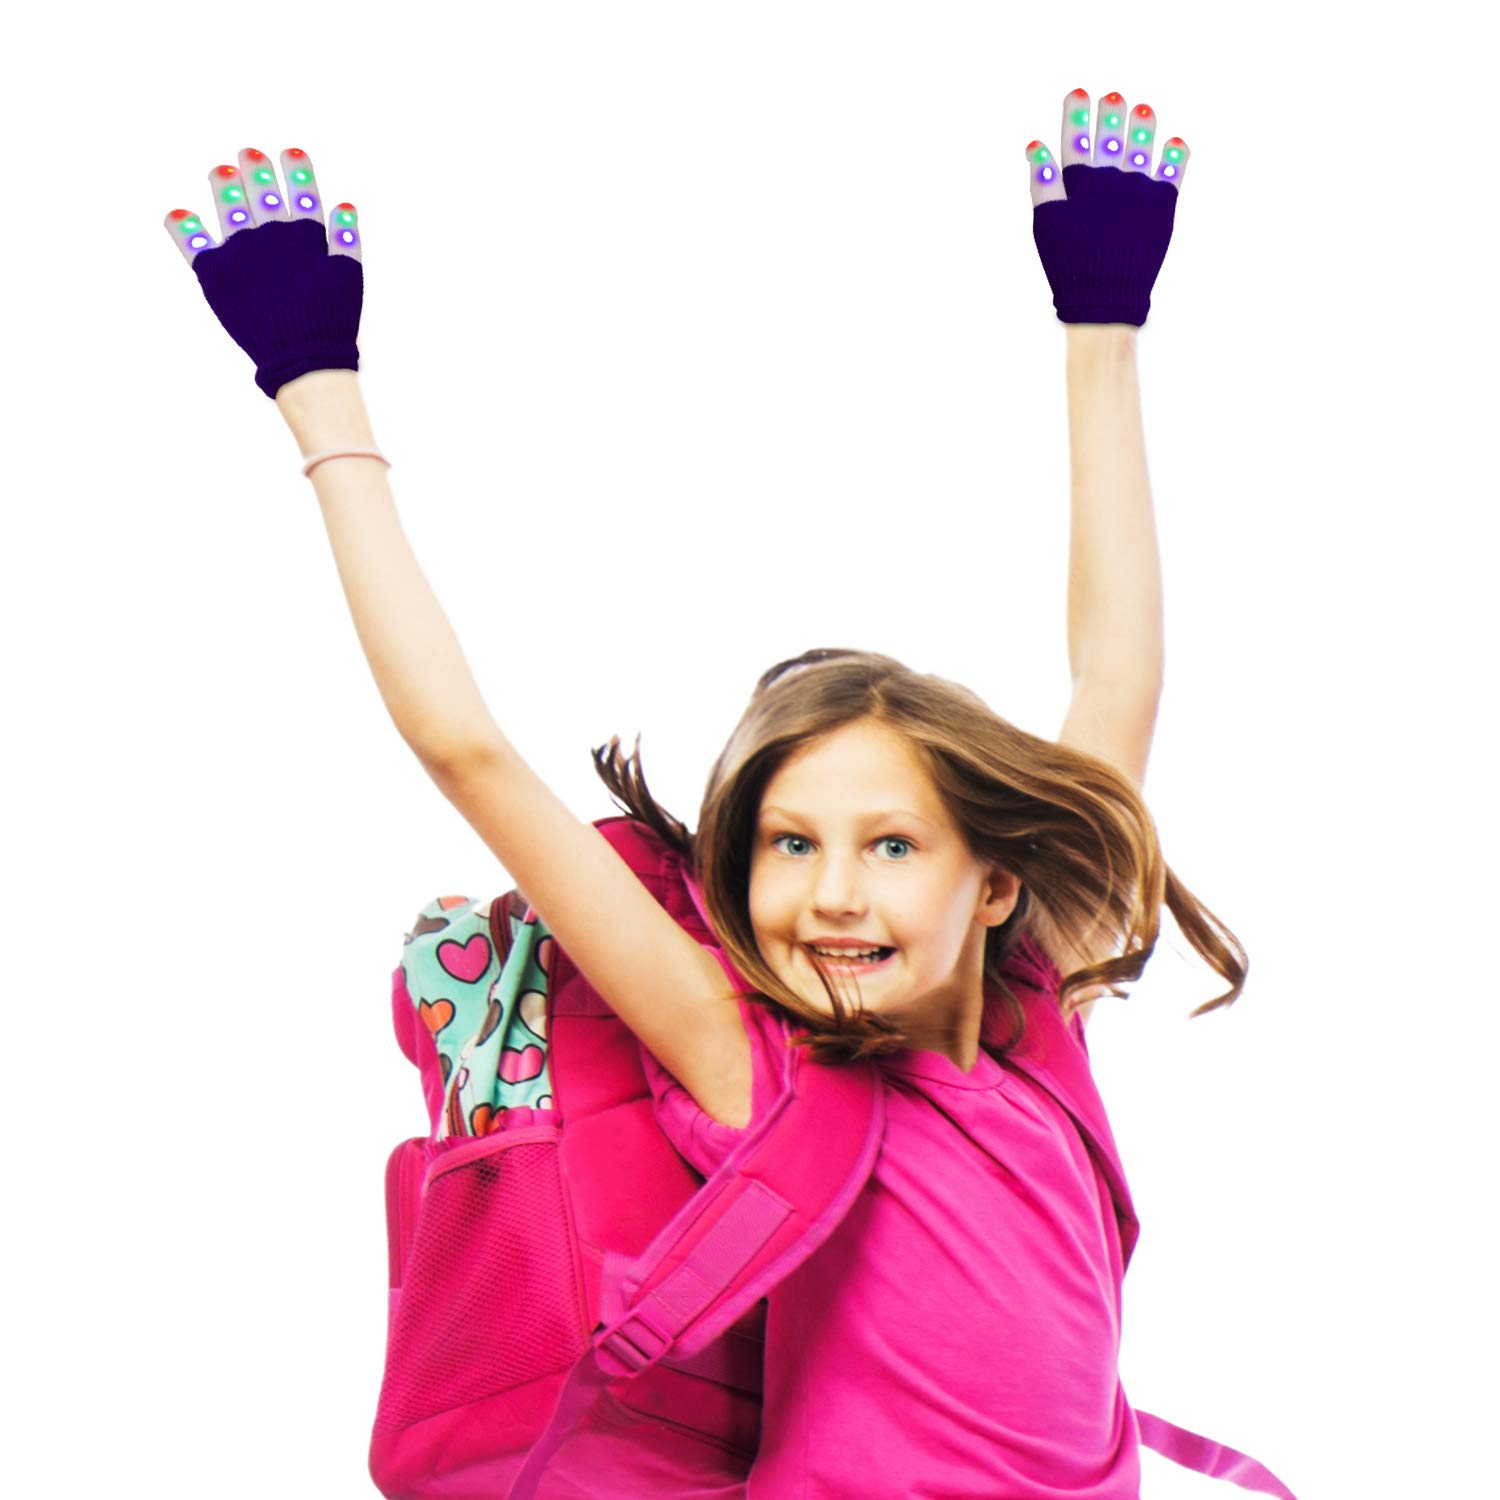 LED Gloves, Light Up Hand Gloves, Flashing Fingers Colourful Rave Gloves 6 Modes Glow for Festivals/ Halloween/ Christmas/ Bonfire Night/ Party/ Games/ Gift, Small Size Kids(5-10 yrs Purple)